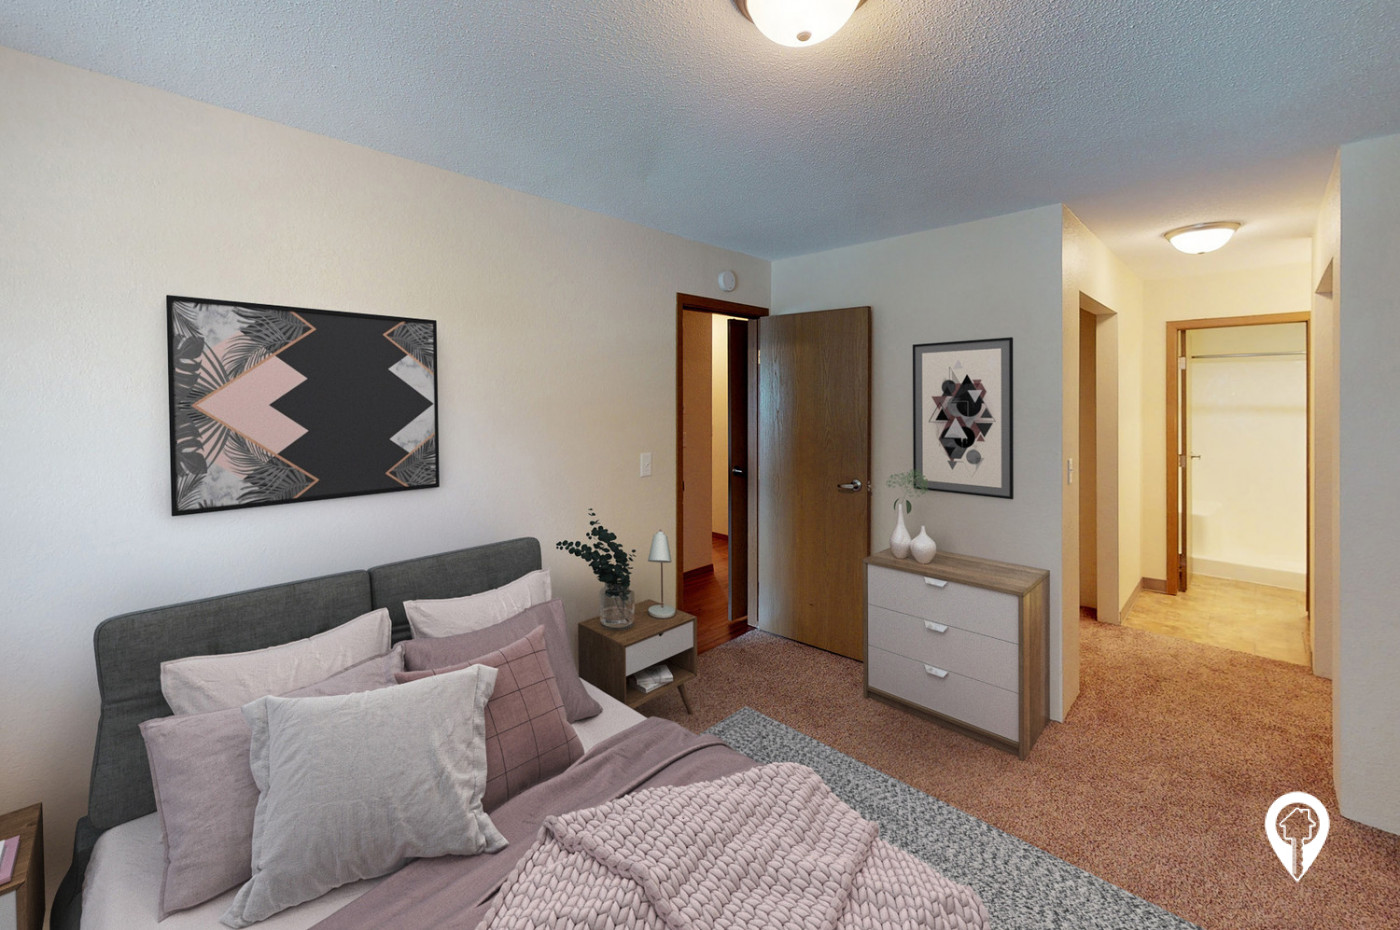 Southwind-Apartments-Inviting-Bedrooms-with-Walk-In-Closets